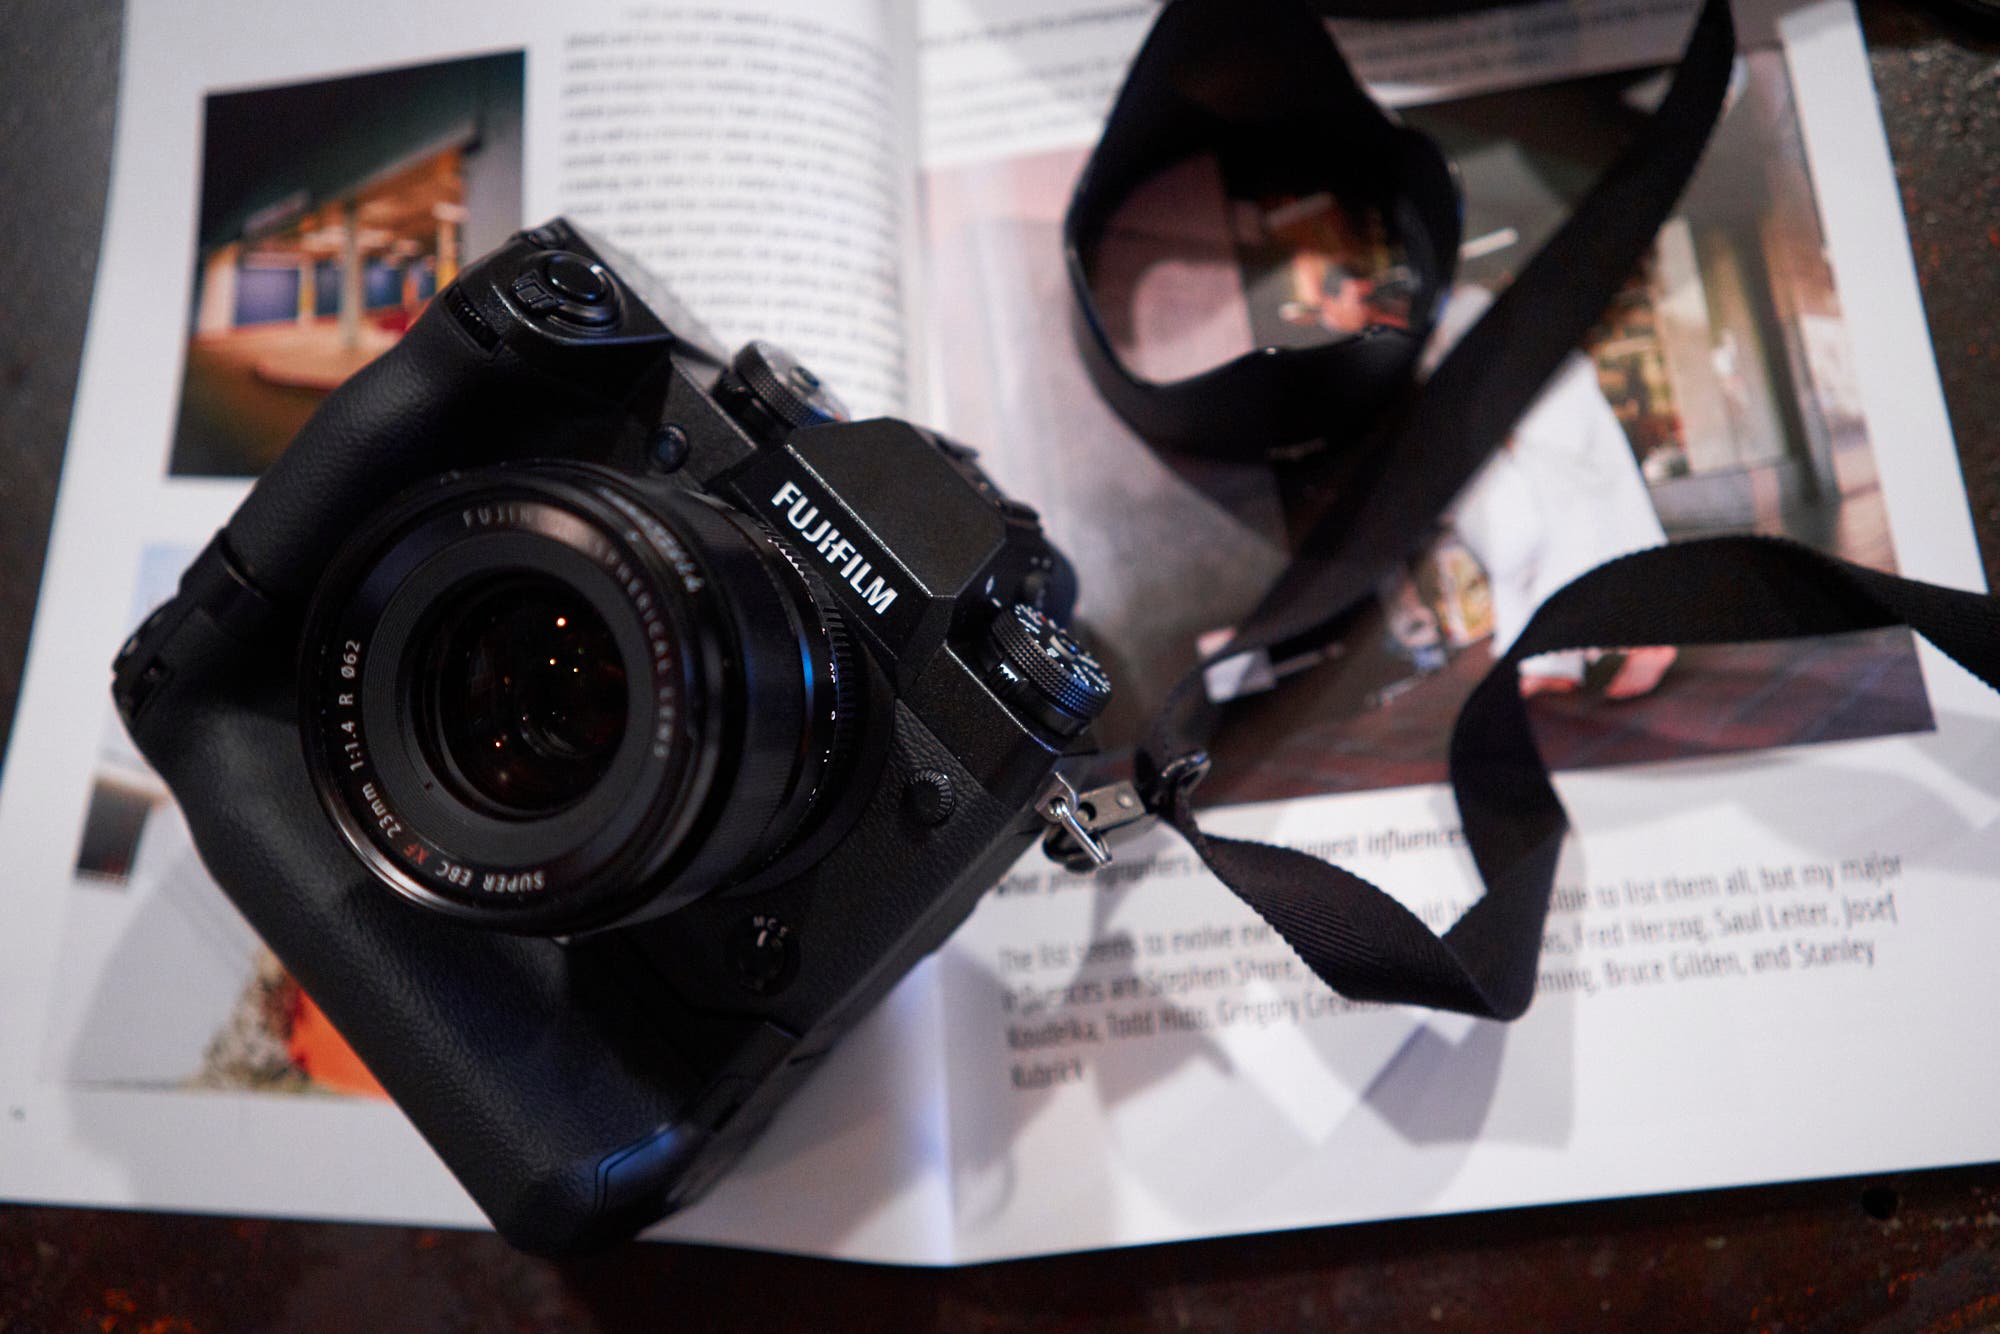 Opinion: 5 Things Fujifilm Must Do to Keep the X and GFX Platforms Growing